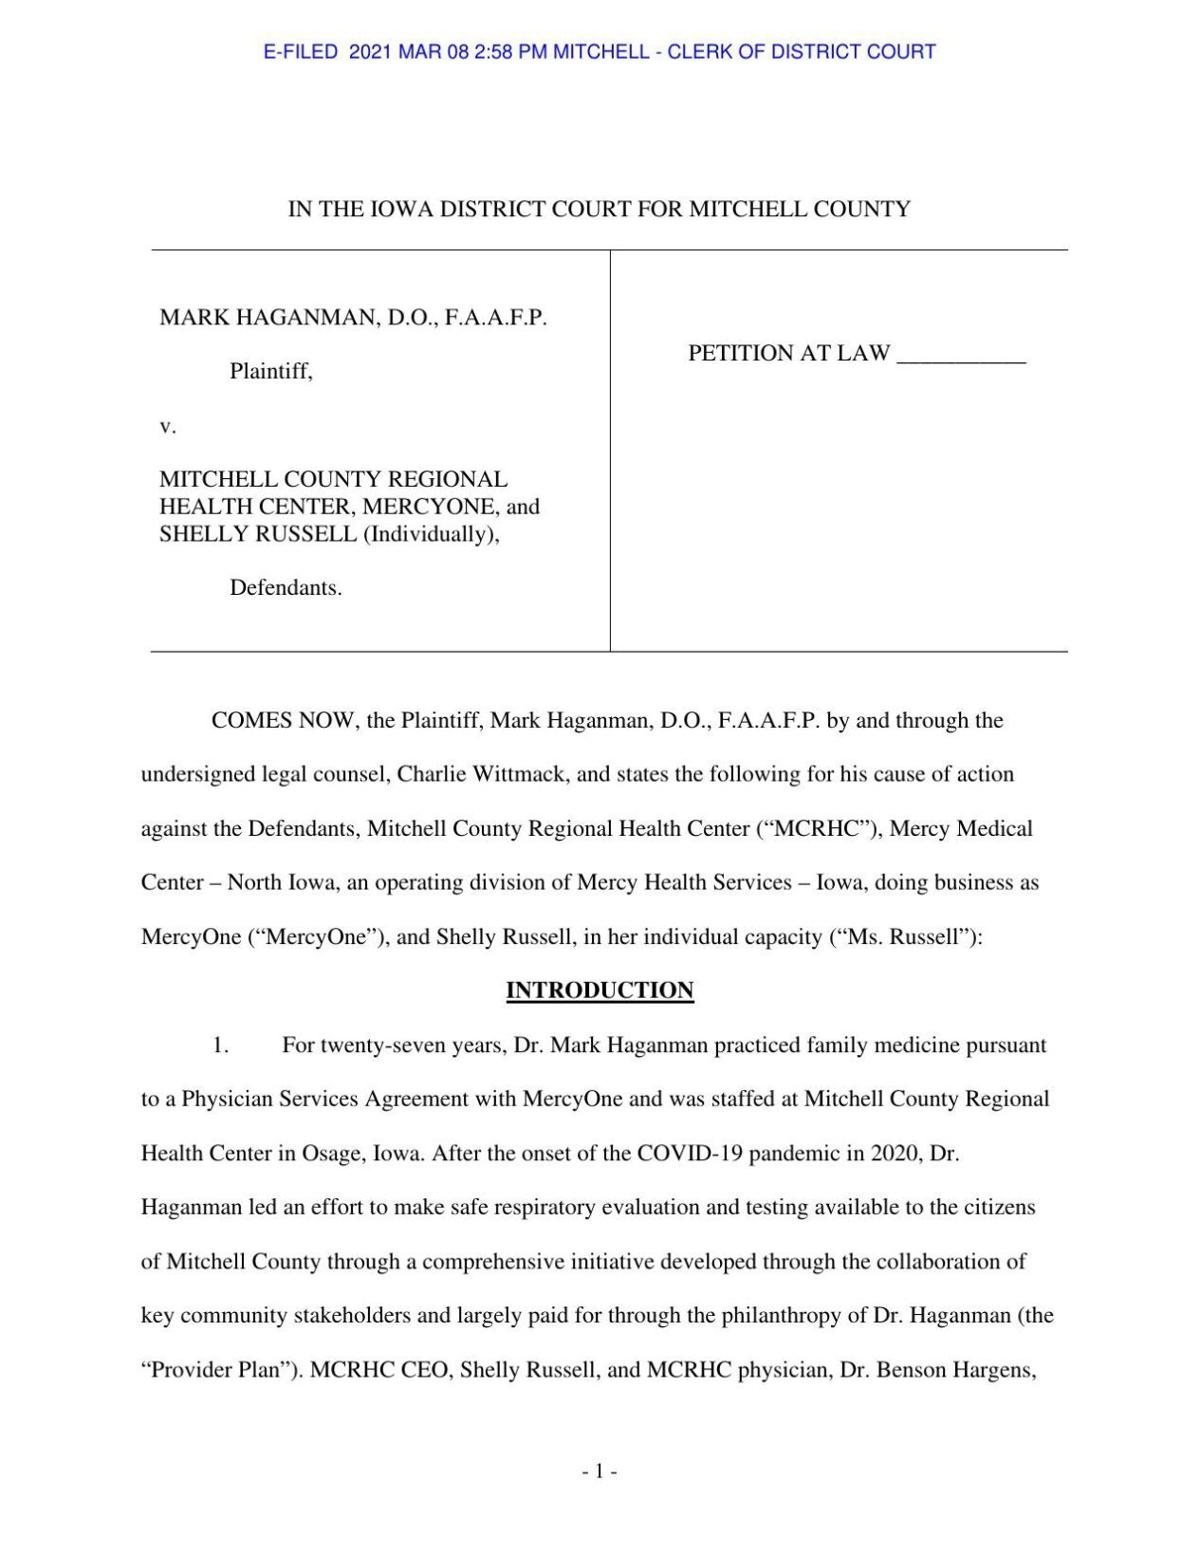 Haganman lawsuit